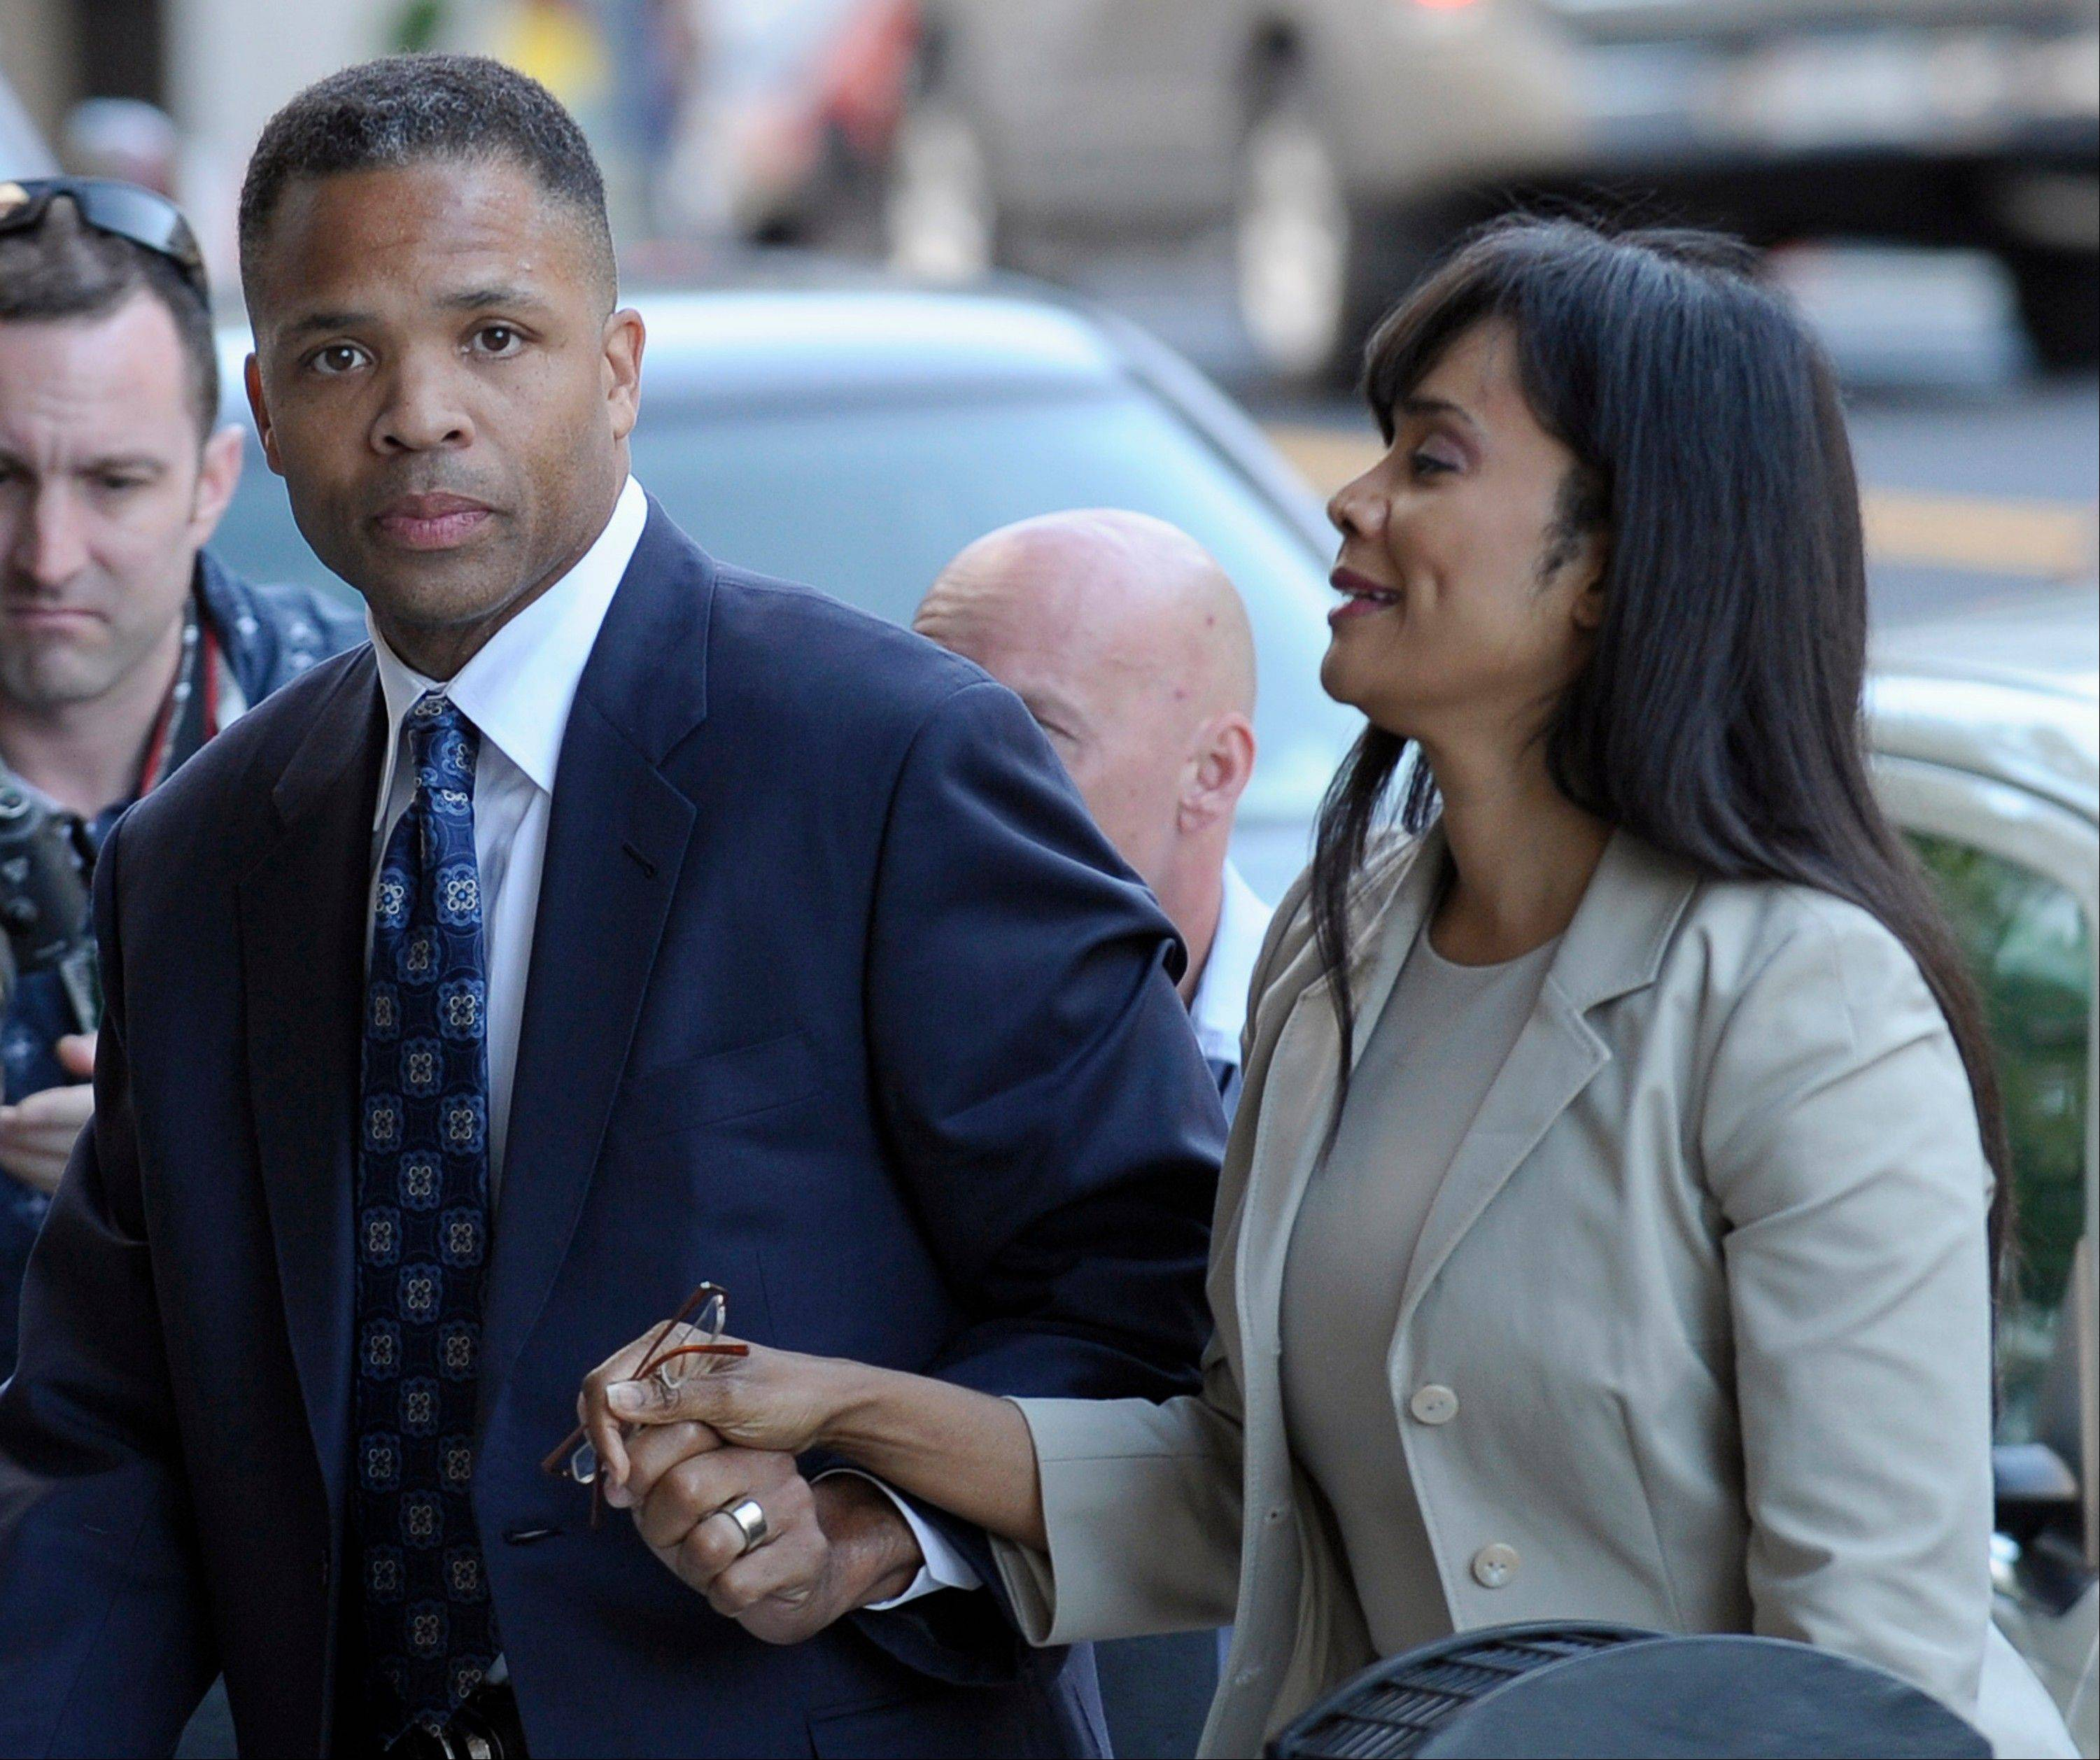 Former Illinois Rep. Jesse Jackson Jr. and his wife, Sandra, arrive at federal court in Washington in August. Mink capes and assorted Michael Jackson memorabilia once belonging to Jesse Jackson Jr. are heading to the auction block.